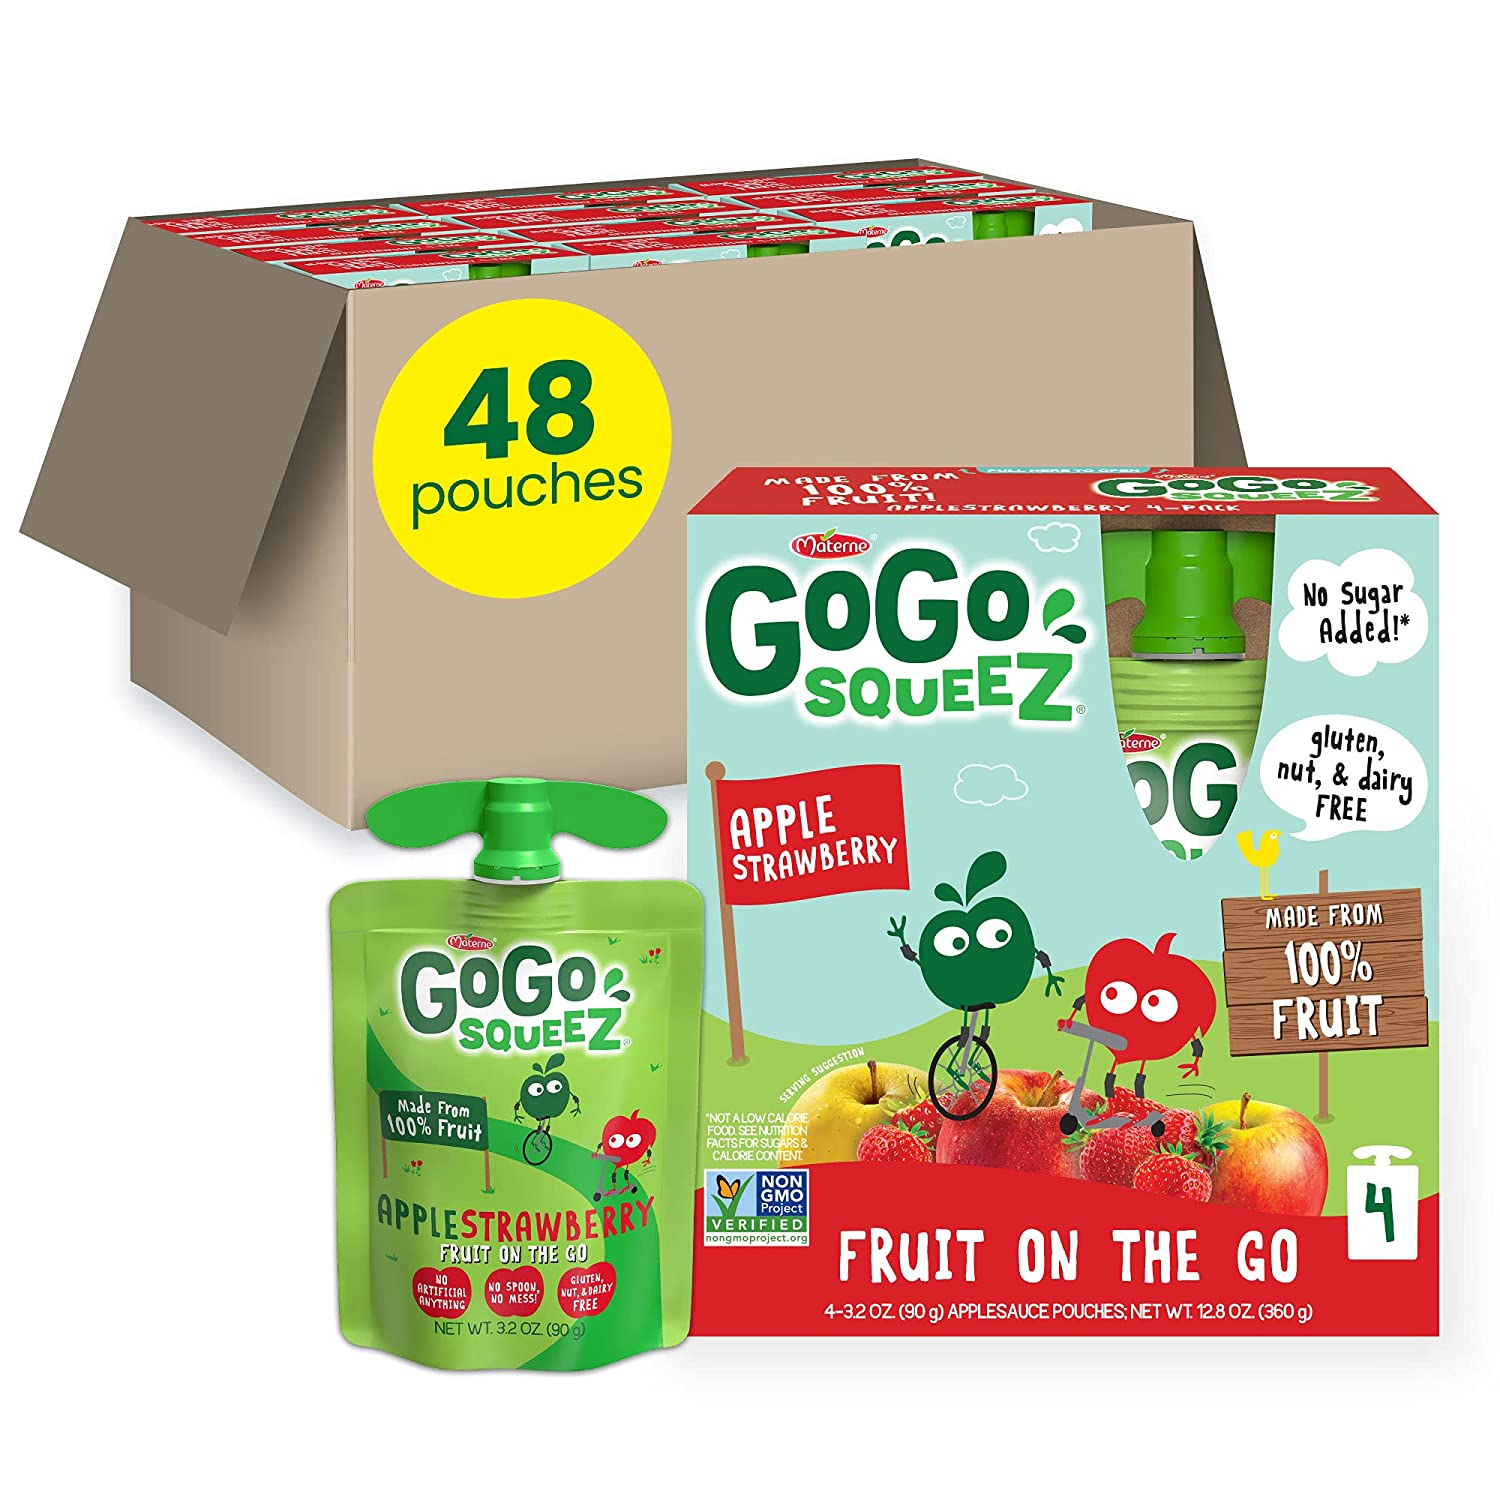 GoGo squeeZ Fruit on the Go, Apple Strawberry, 3.2 oz. (48 Pouches) - Tasty Kids Applesauce Snacks Made from Apples & Strawberries - Gluten Free Snacks for Kids - Nut & Dairy Free - Vegan Snacks